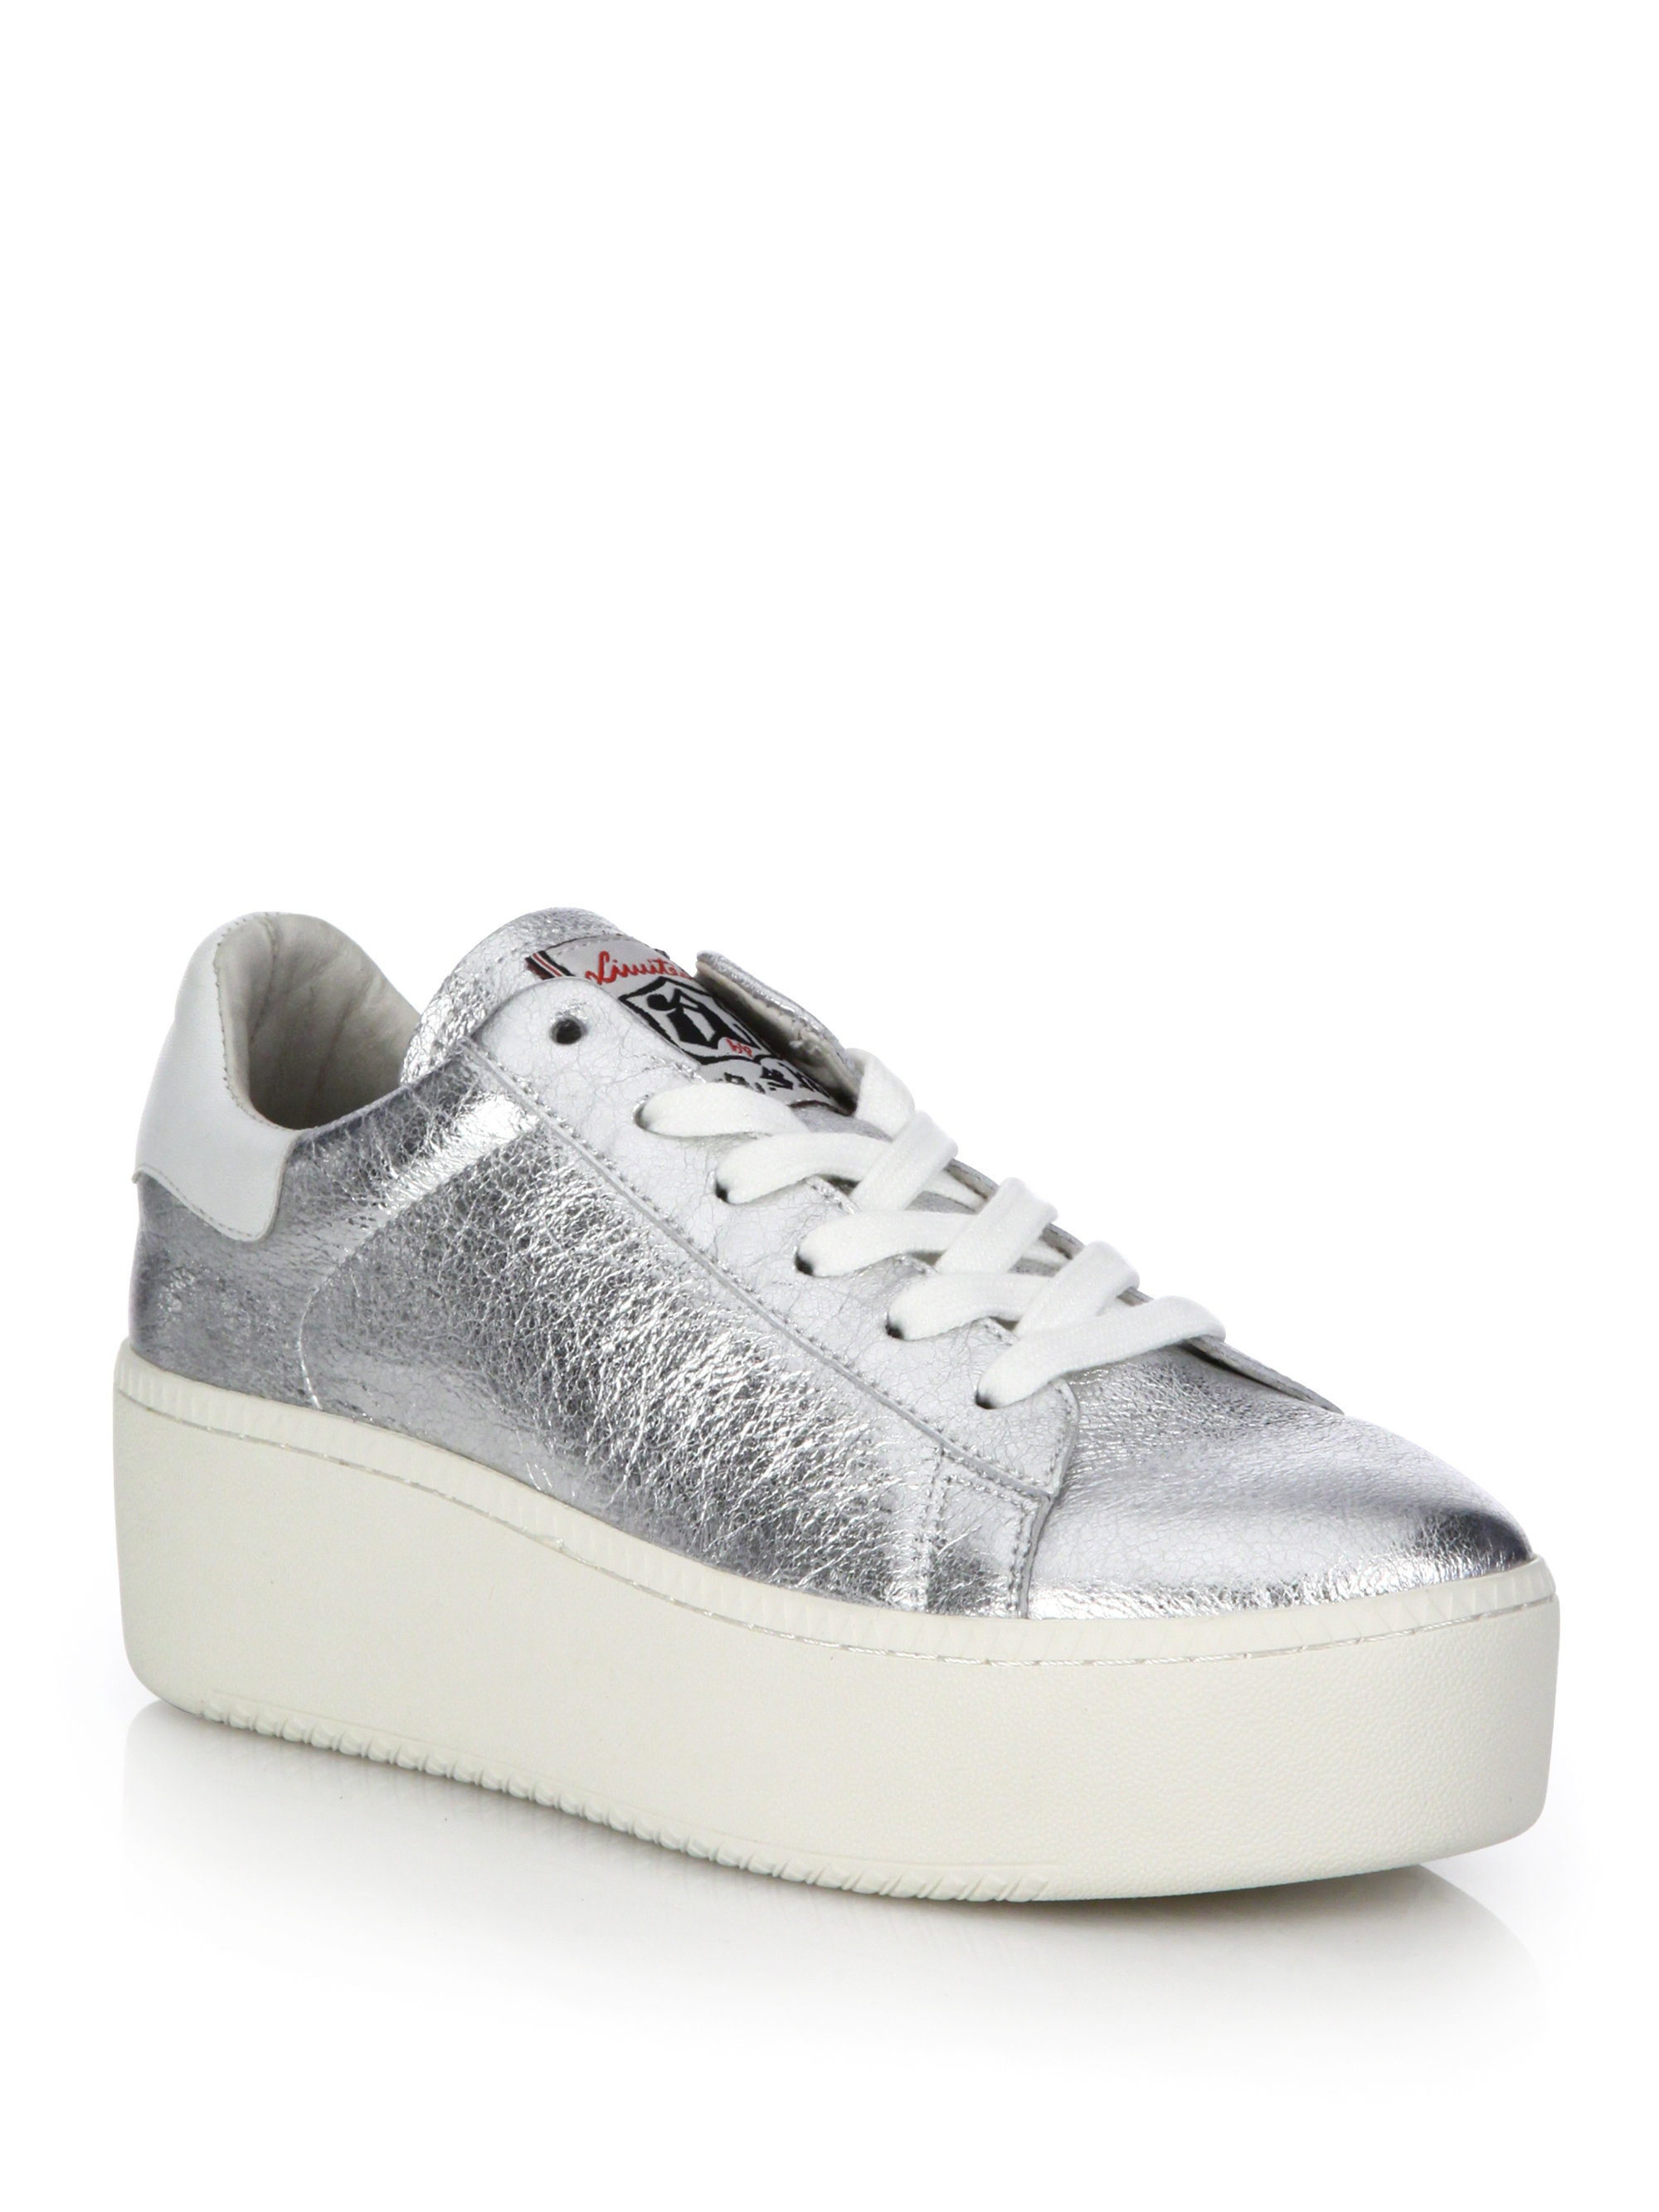 Ash Cult Metallic Leather Platform Sneakers in White